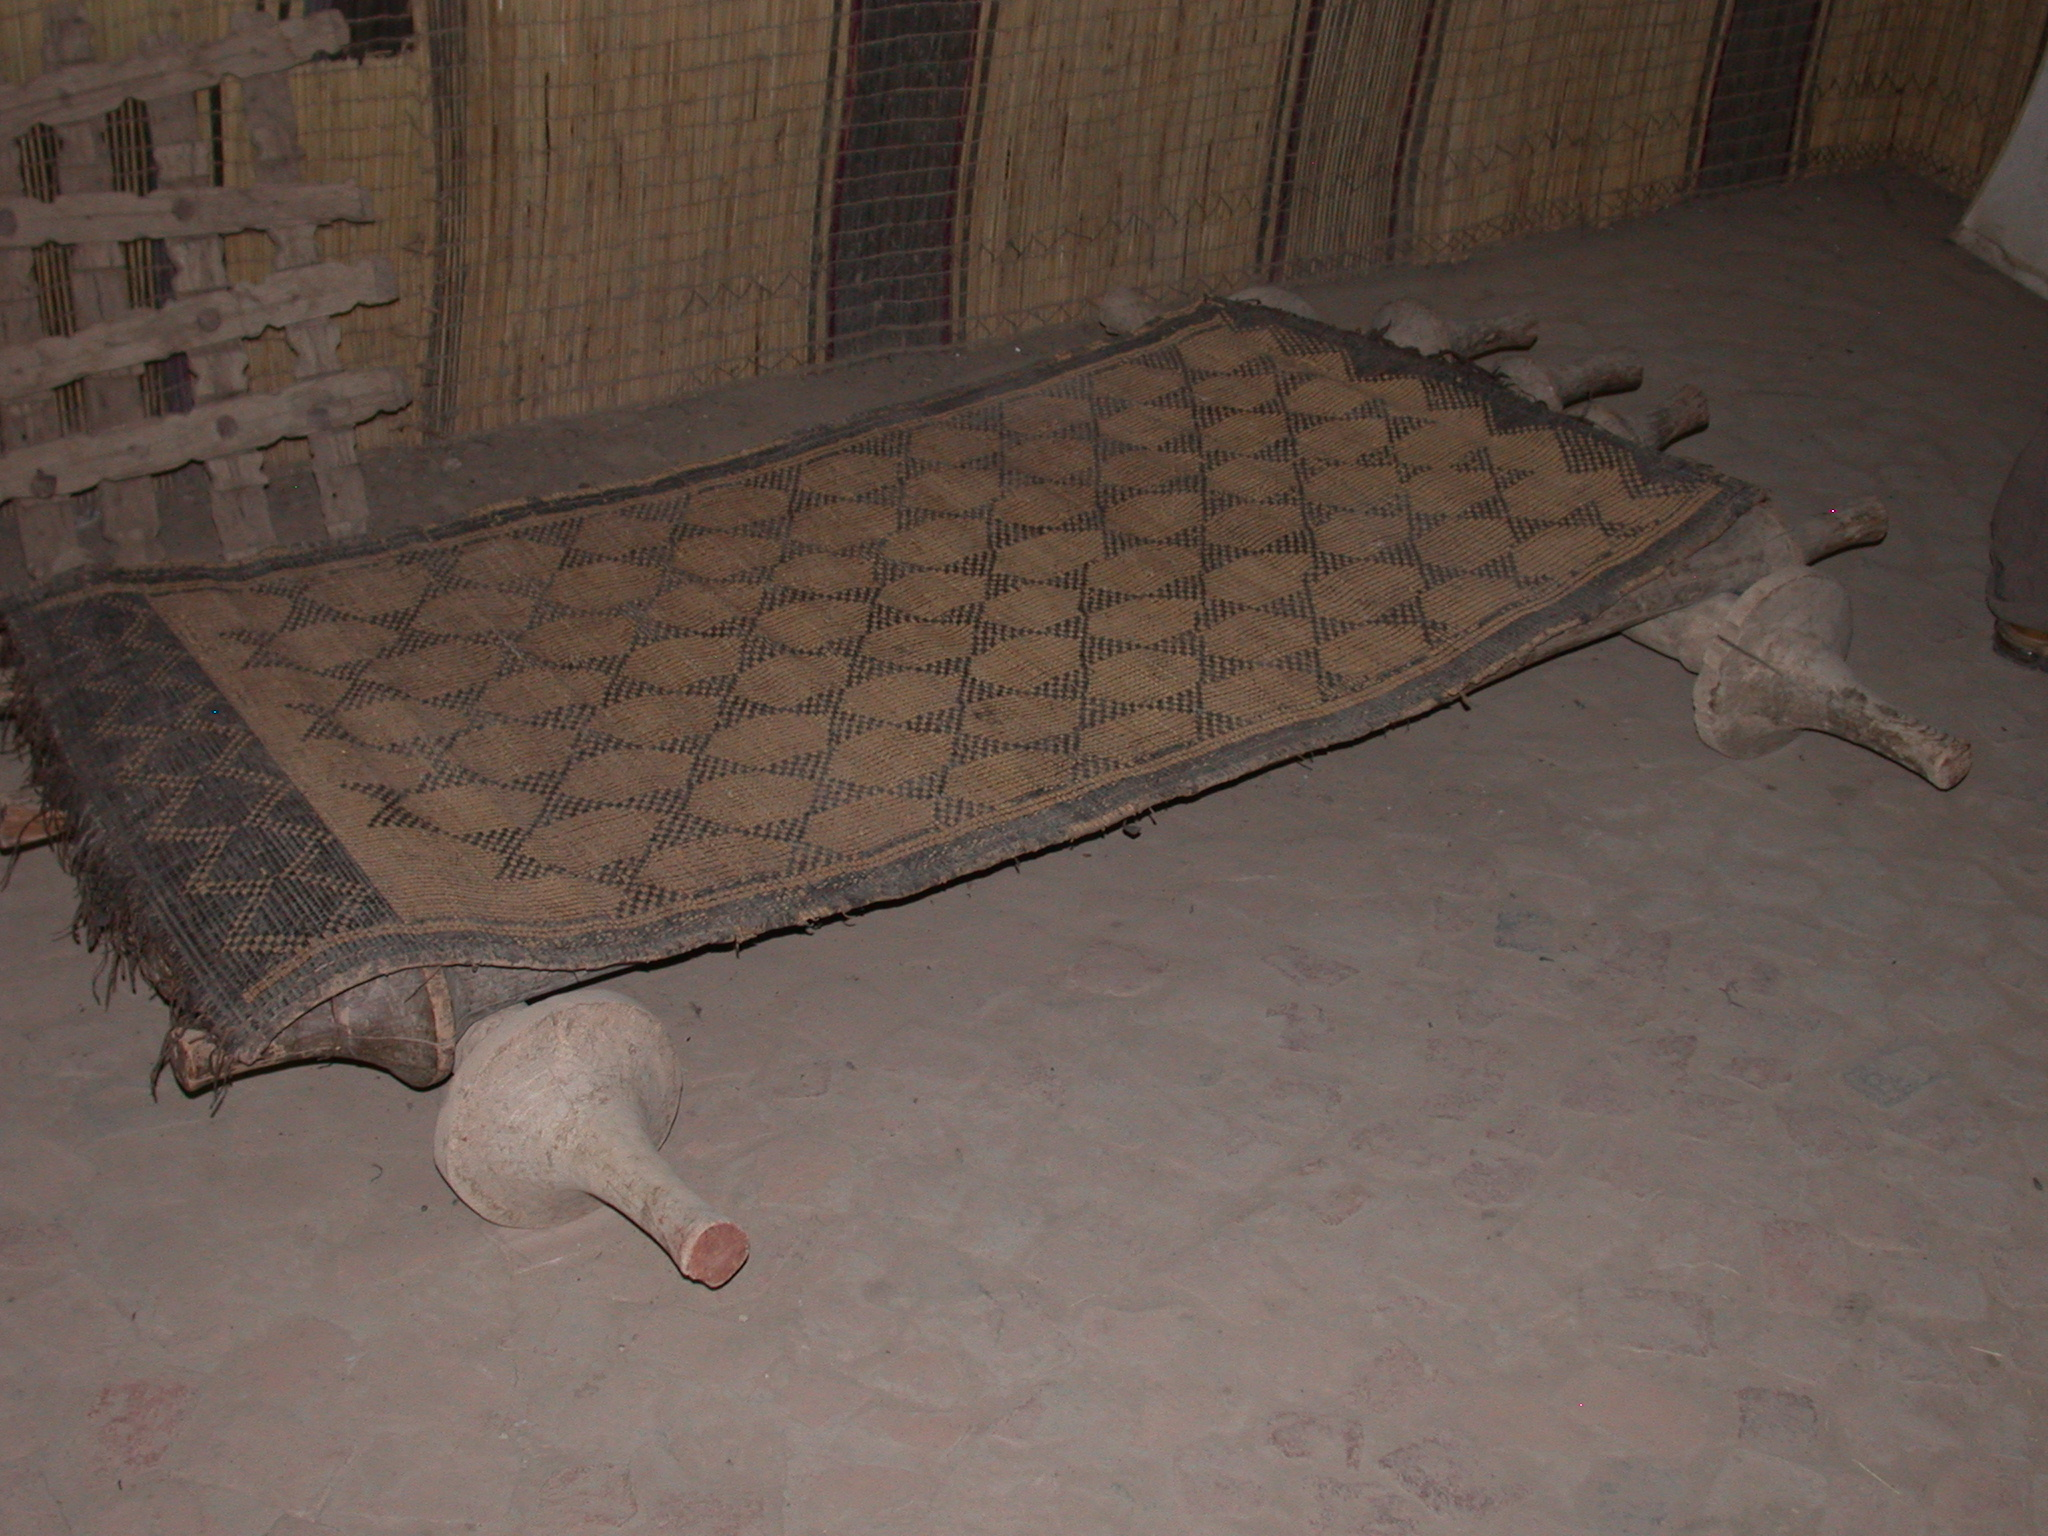 Rockable Bed Mat, Timbuktu Ethnological Museum, Timbuktu, Mali